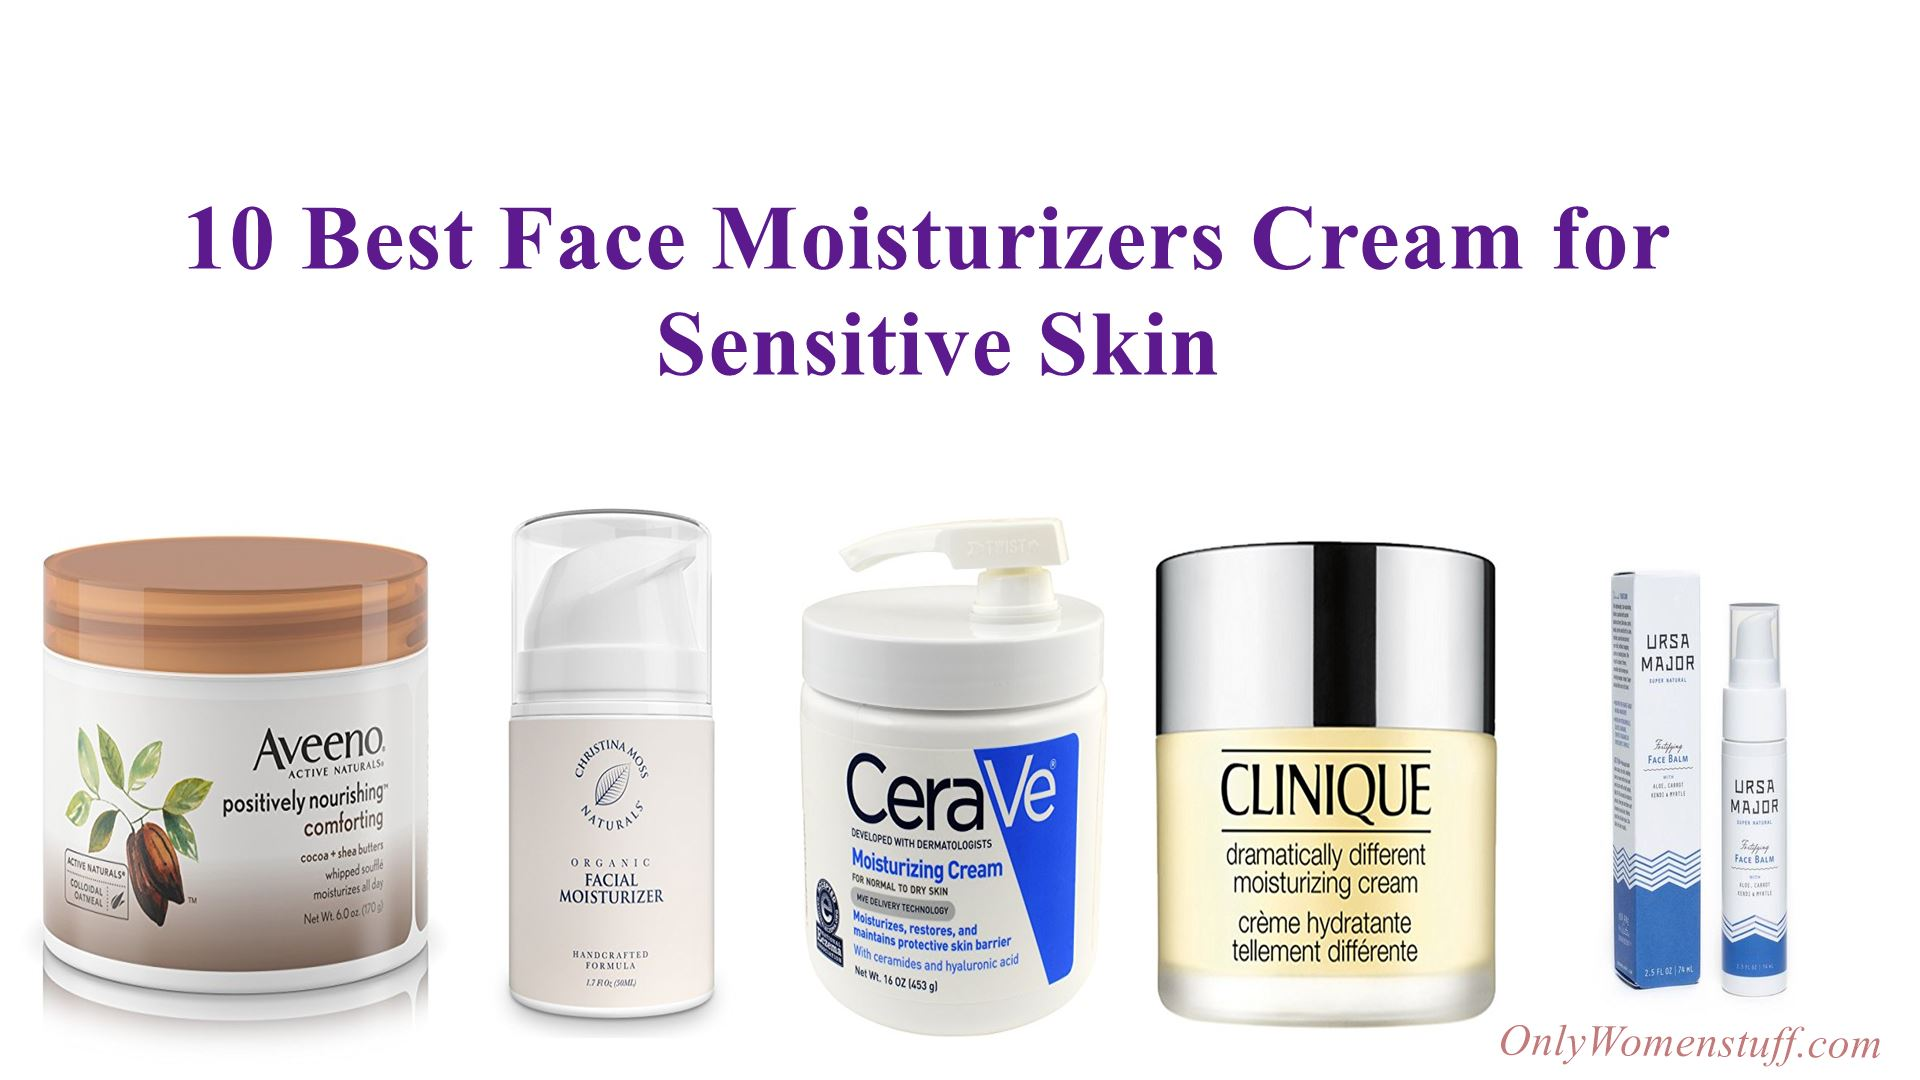 Creams for Sensitive Skin Face